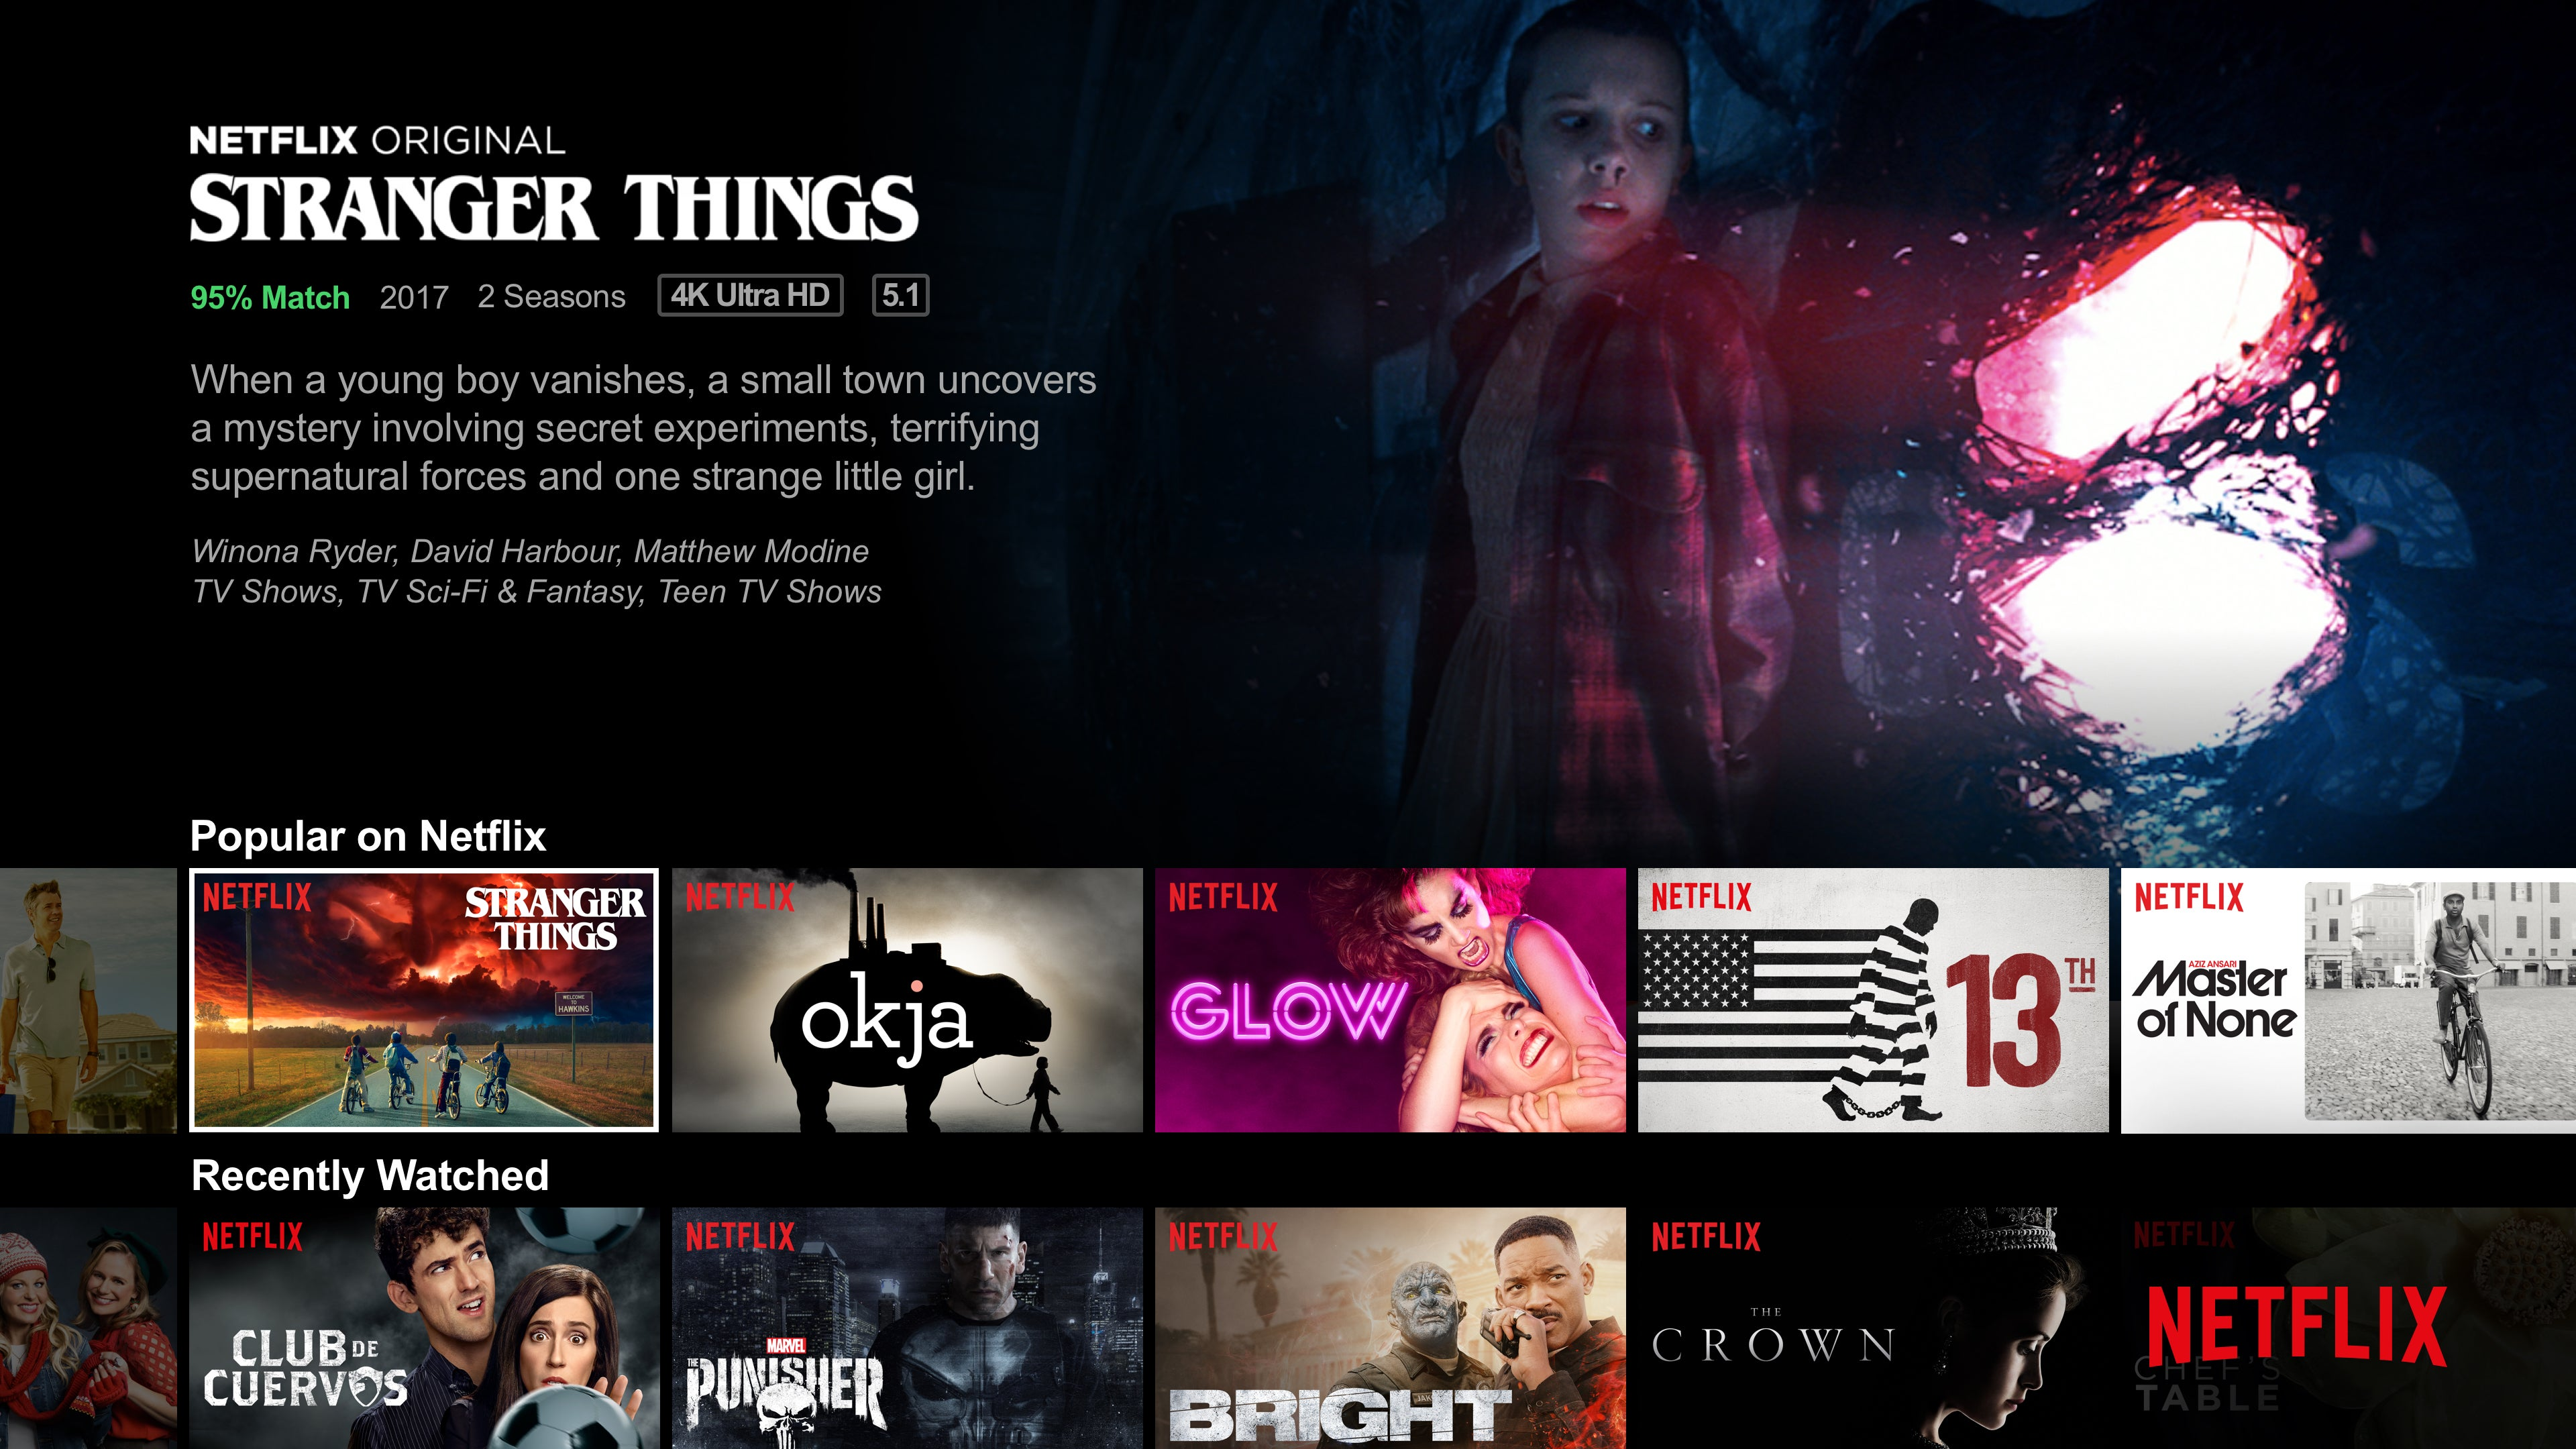 Netflix is apparently fed up of freeloaders – drops free trials in UK